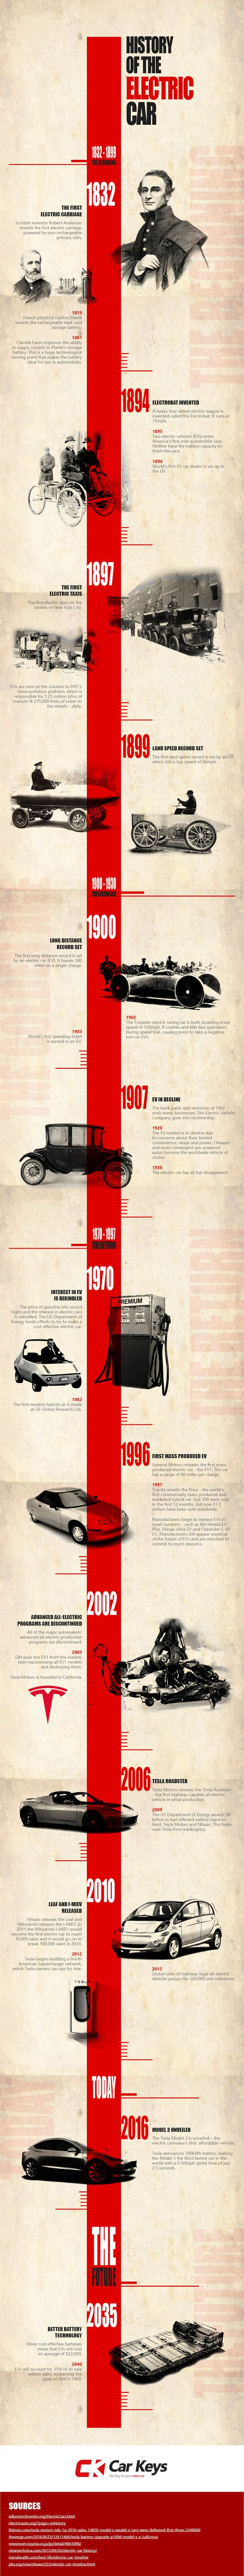 Ever wondered what the origins of the electric car are? We go all the way back…